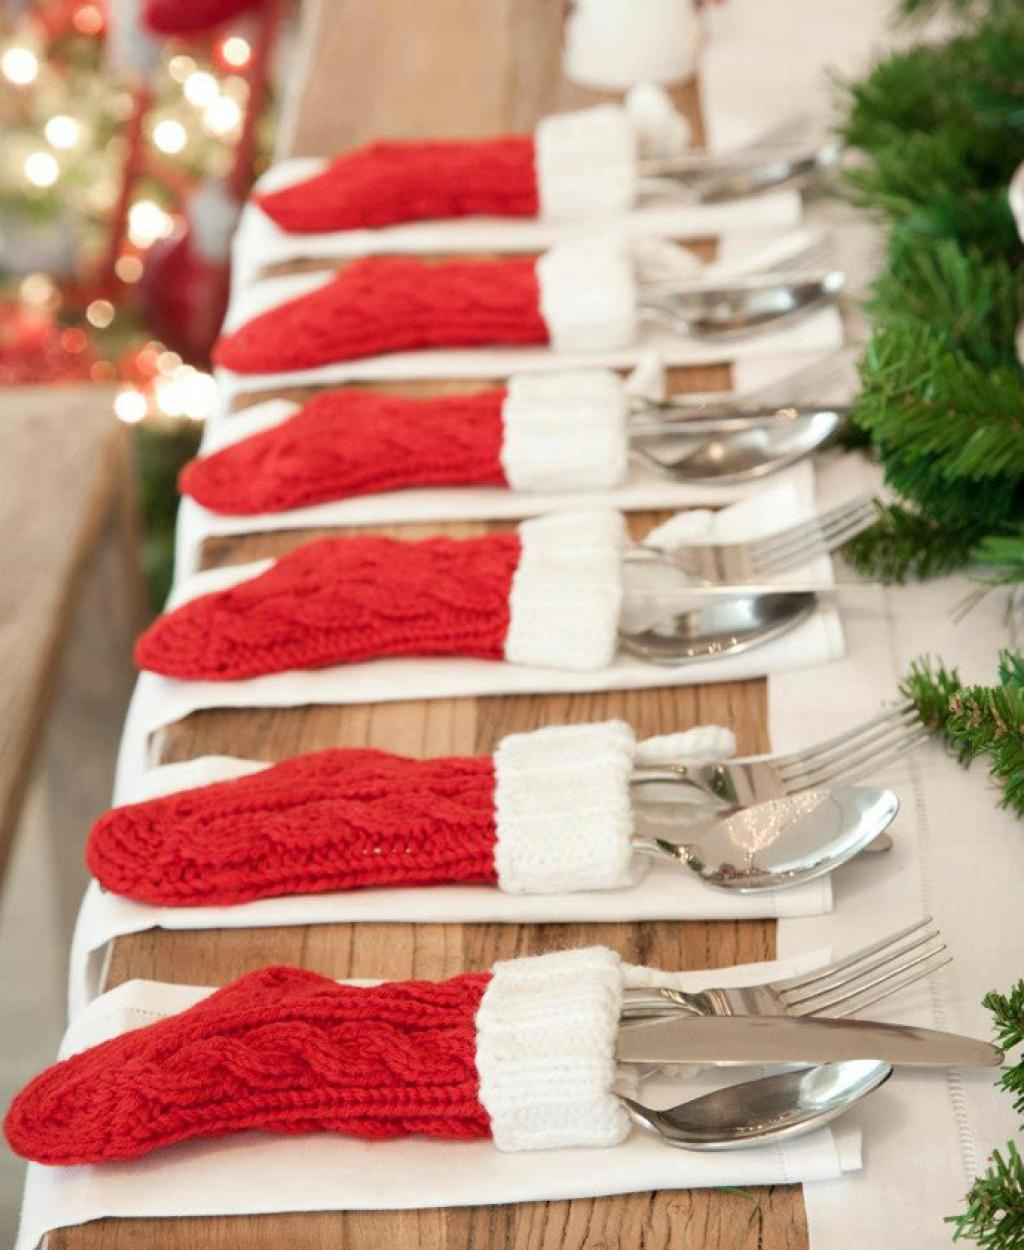 3 silverware stockings - Diy Christmas Table Decorations